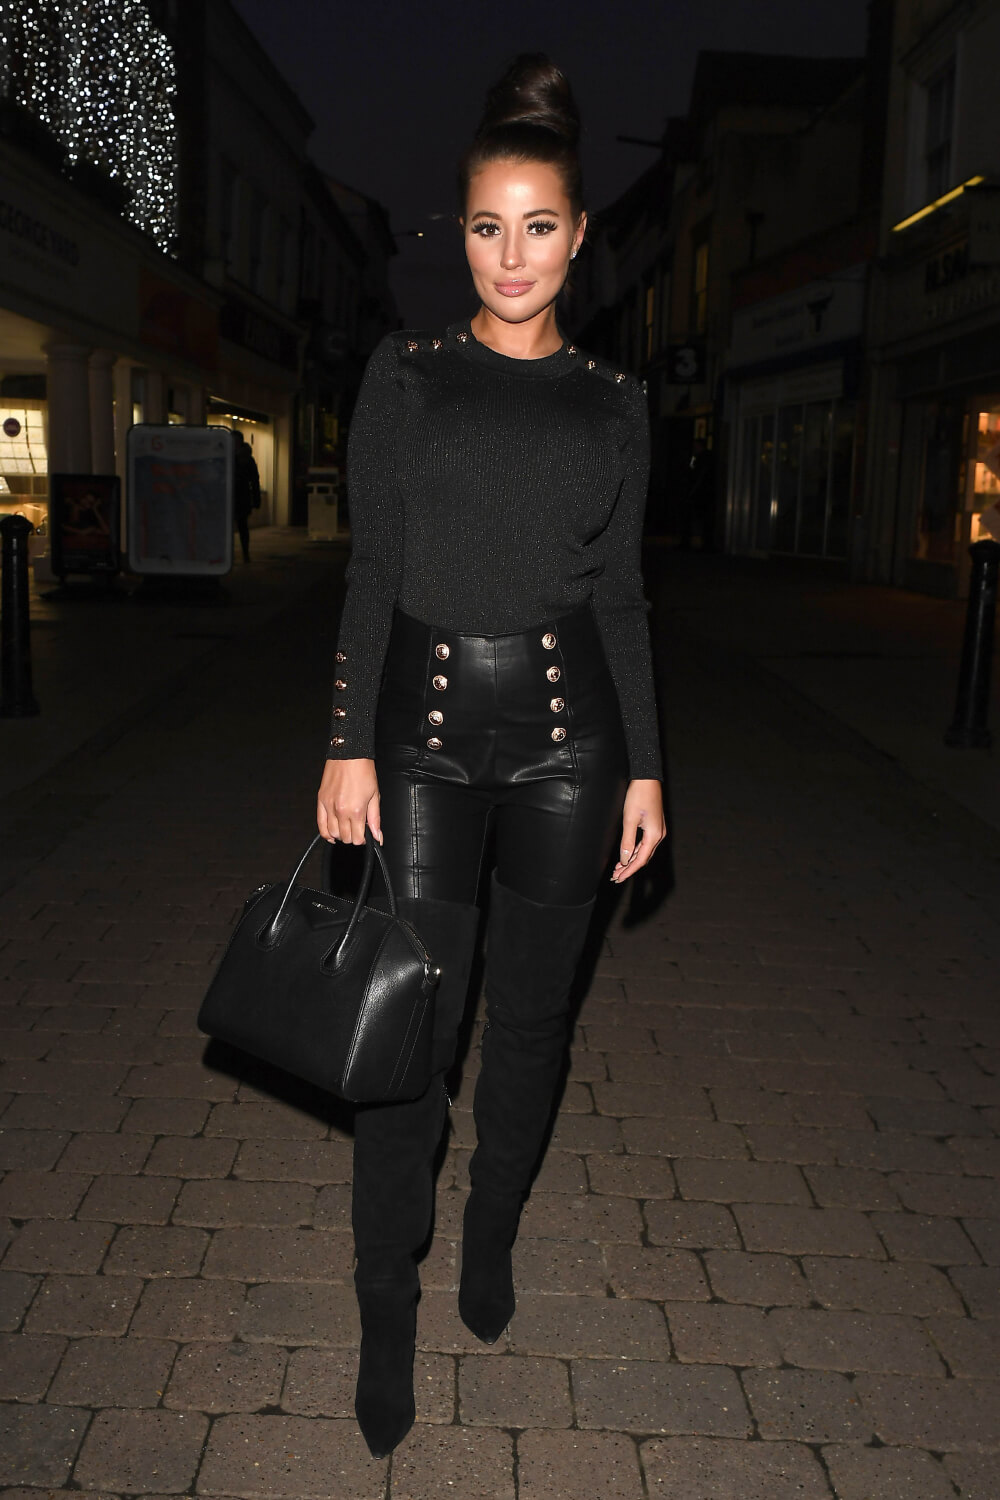 Yazmin Oukhellou at The Only Way is Essex Christmas Special filming